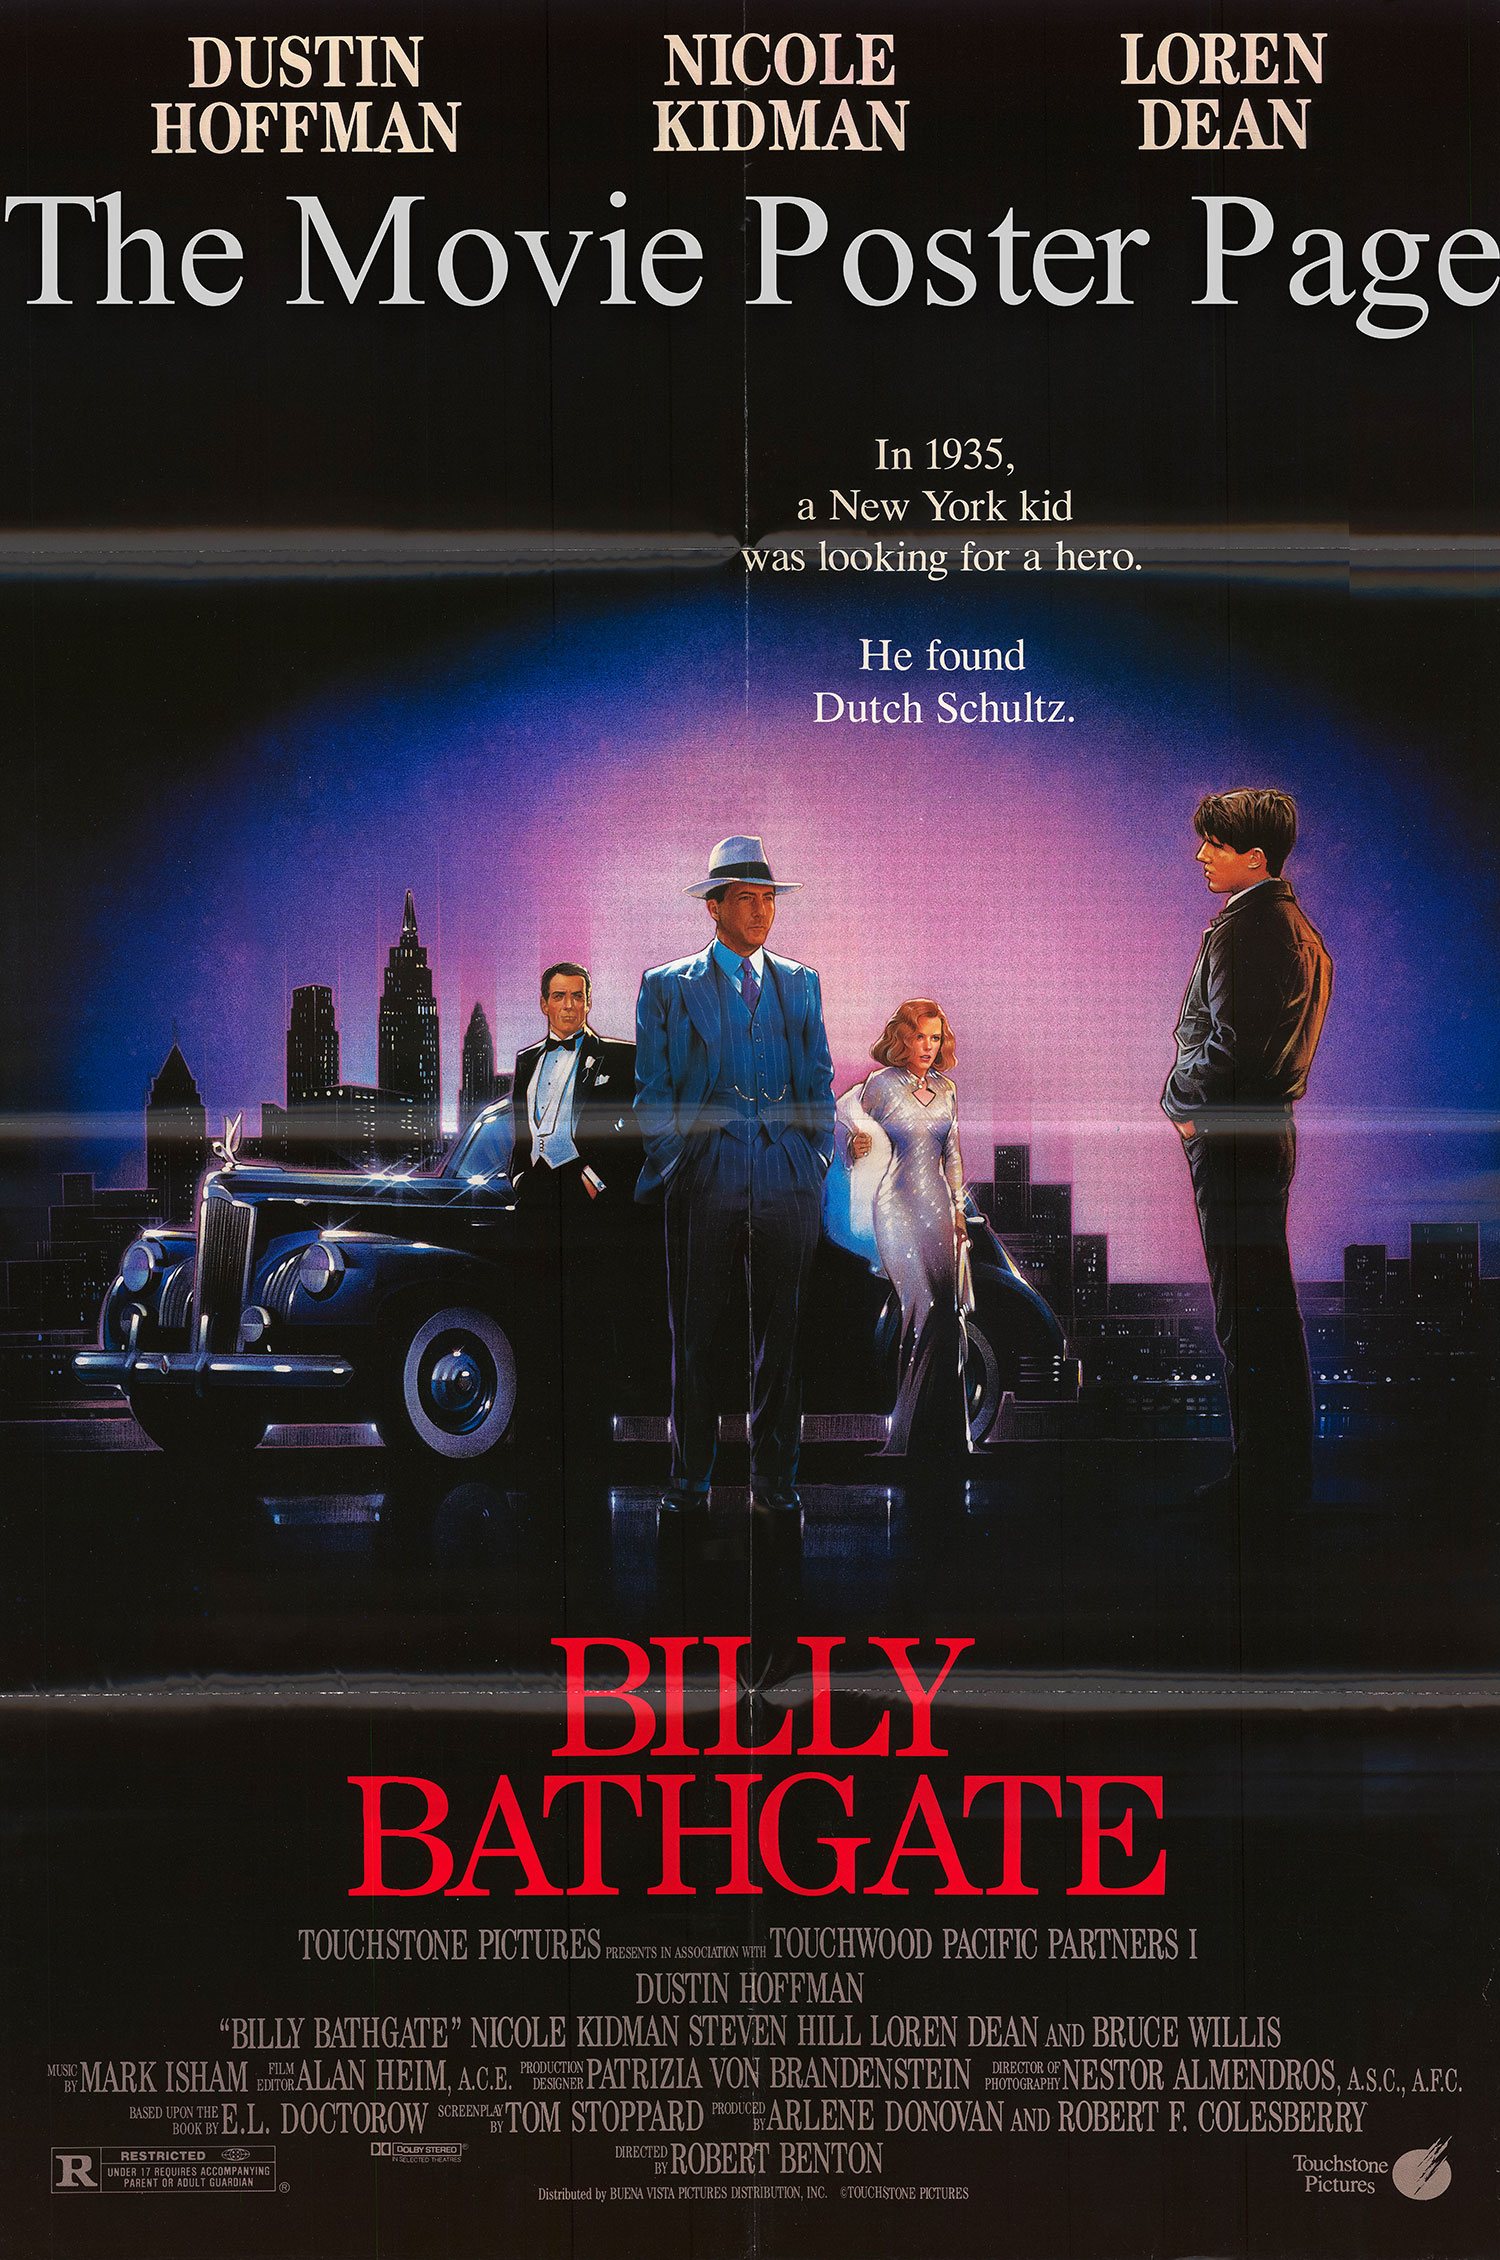 Pictured is a US one-sheet poster for the 1991 robert Benton film Billy Bathgate starring Dustin Hoffman.